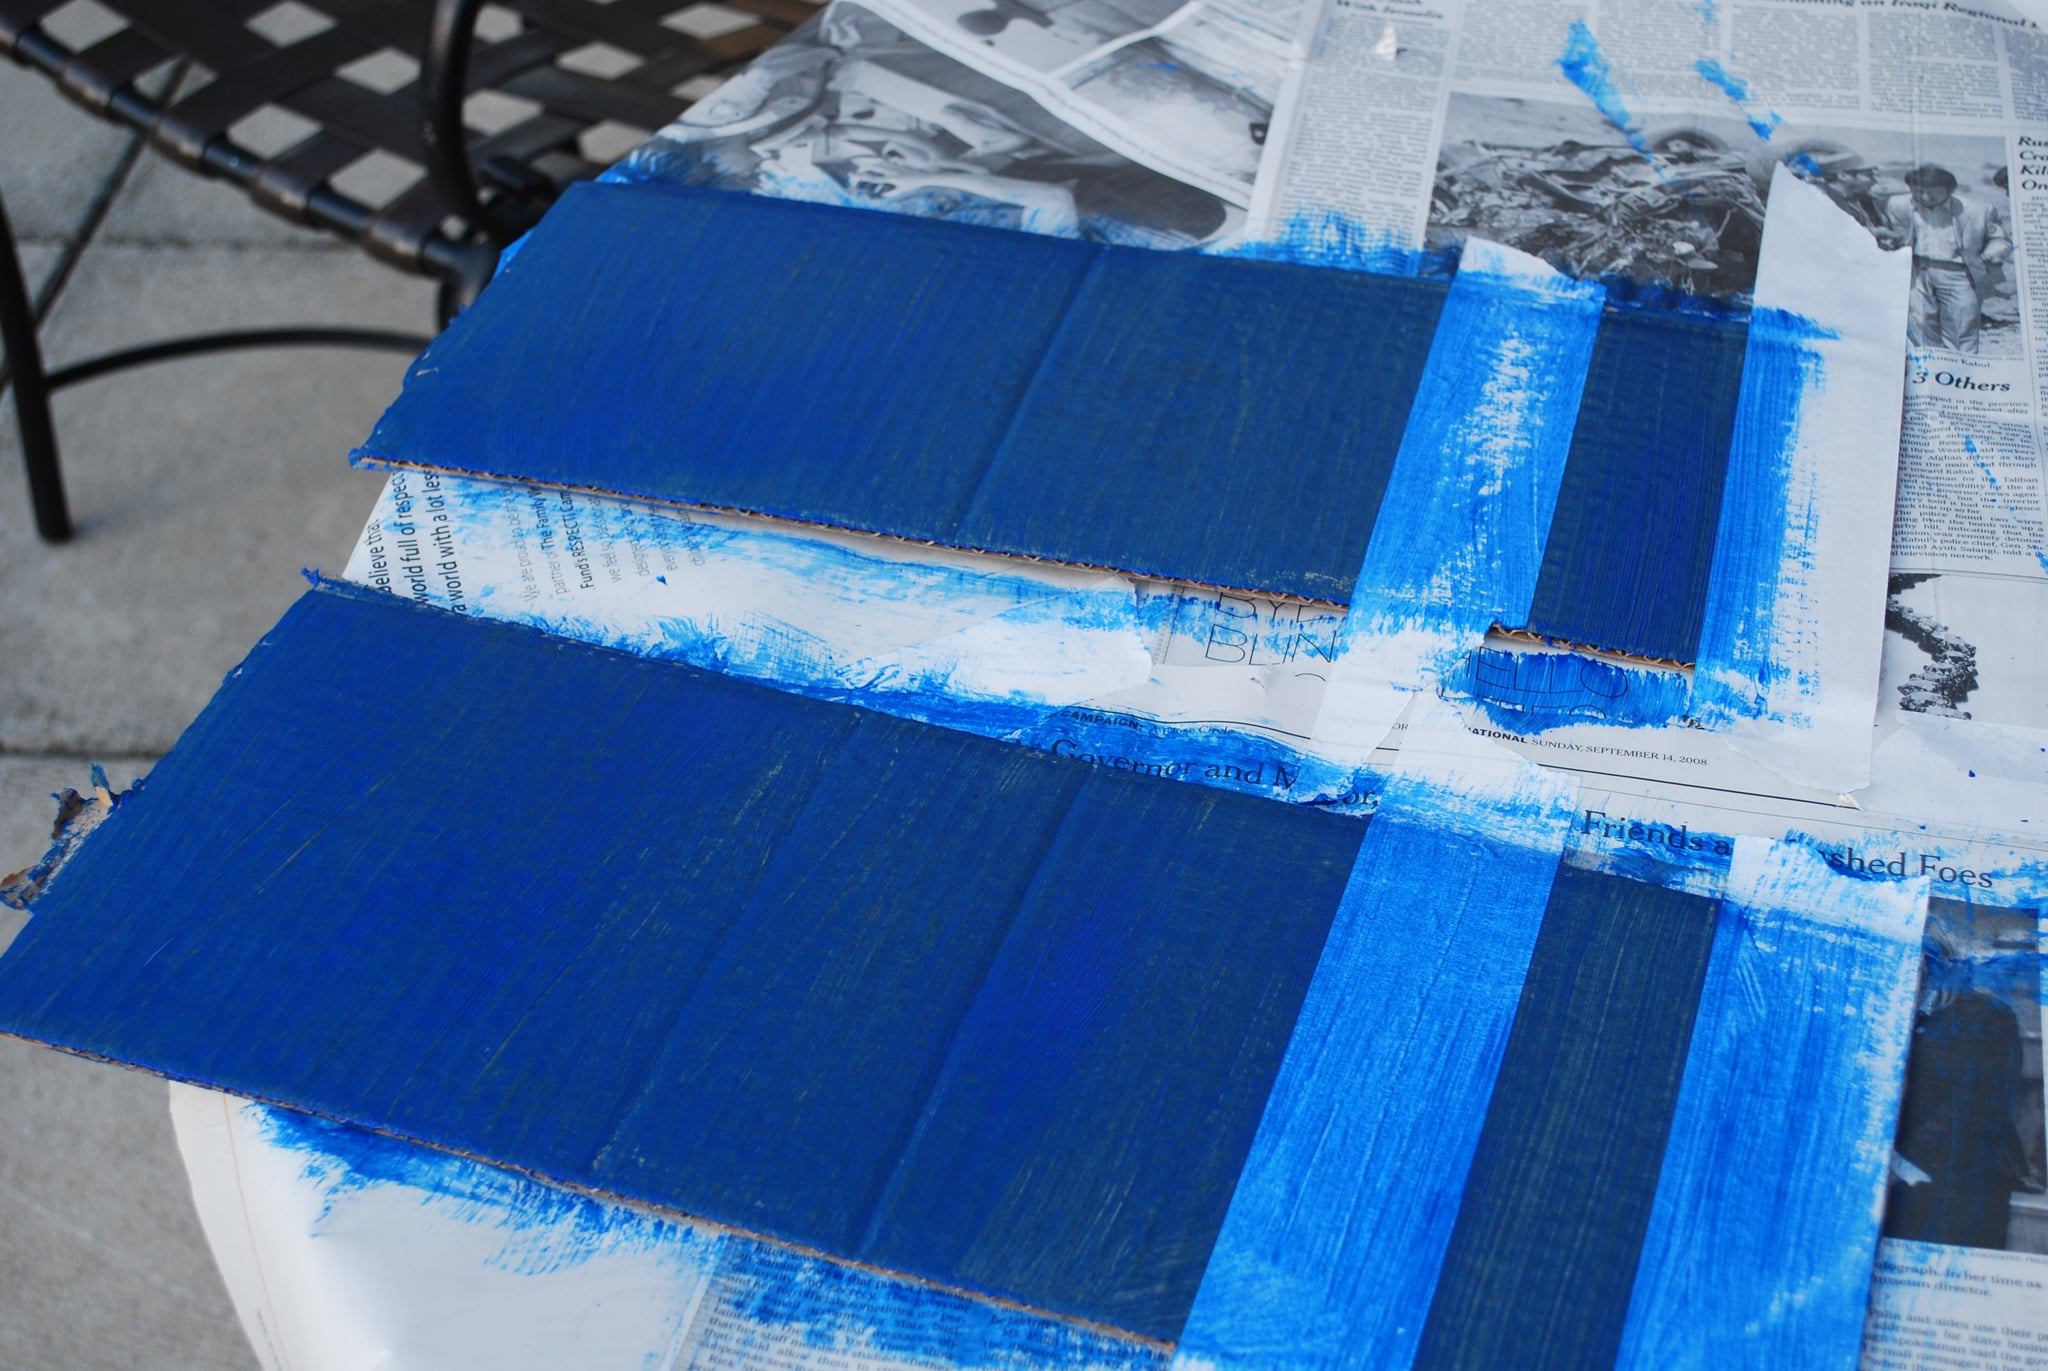 Paint the flaps the same color as the body of the plane.